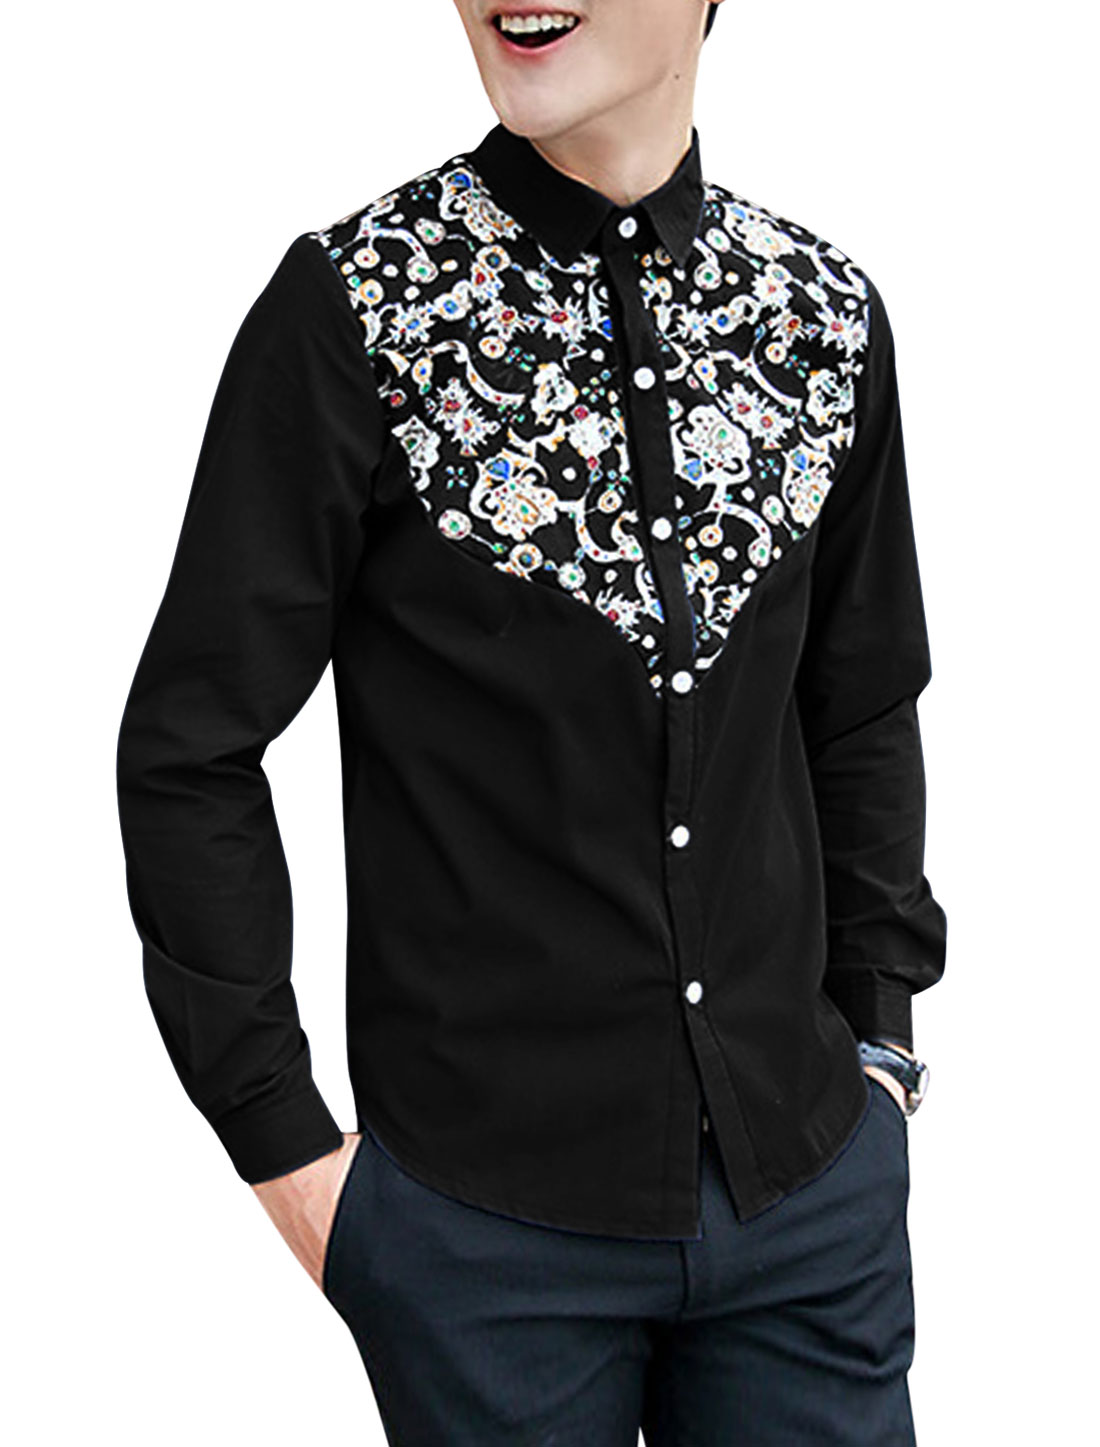 Men Single Breasted Floral Prints Round Hem Slim Fit Casual Shirt Black M